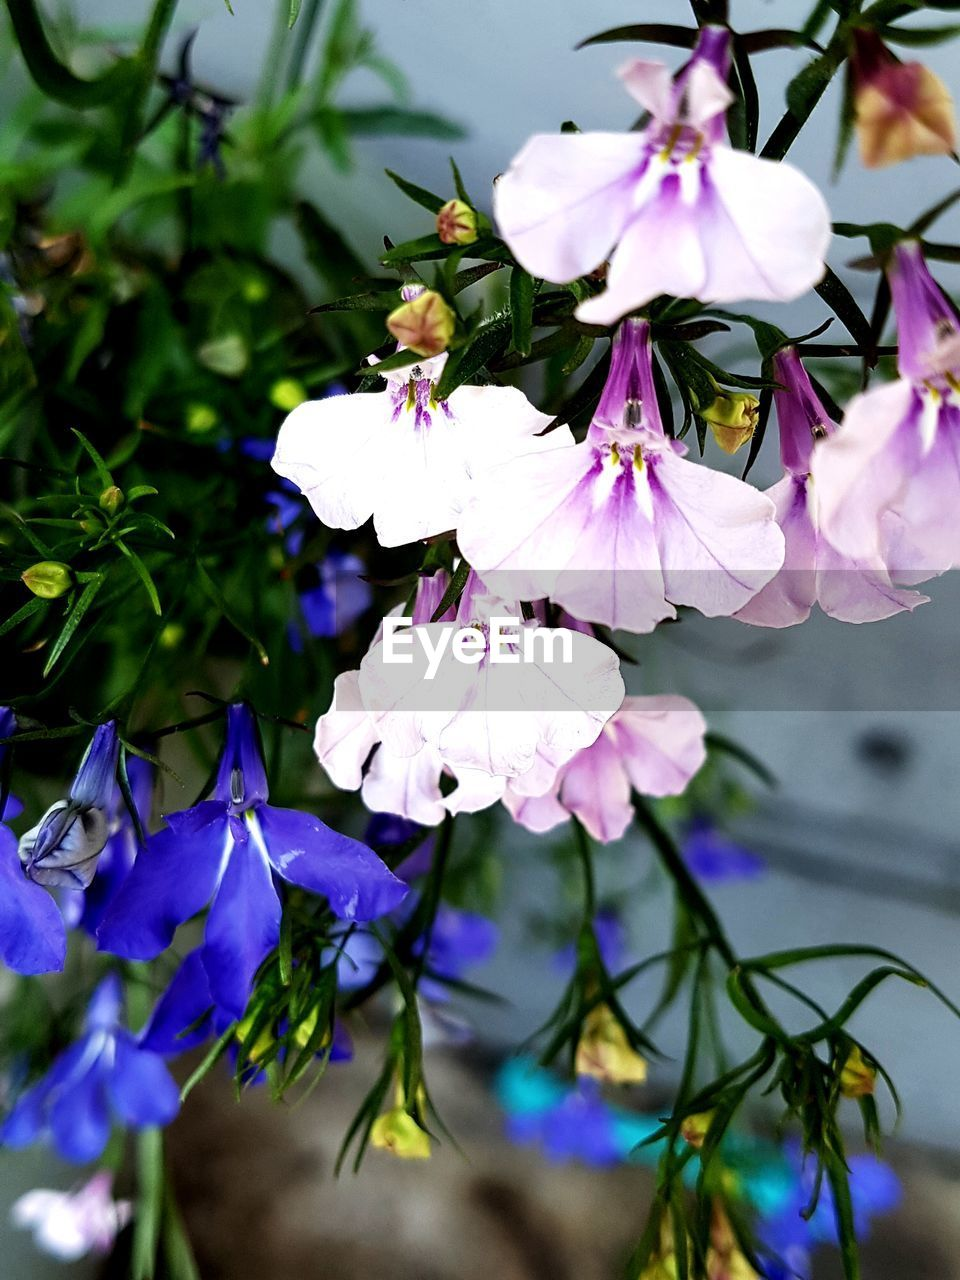 flowering plant, flower, plant, beauty in nature, freshness, fragility, petal, growth, vulnerability, close-up, flower head, inflorescence, nature, purple, no people, day, tree, focus on foreground, botany, branch, outdoors, pollen, springtime